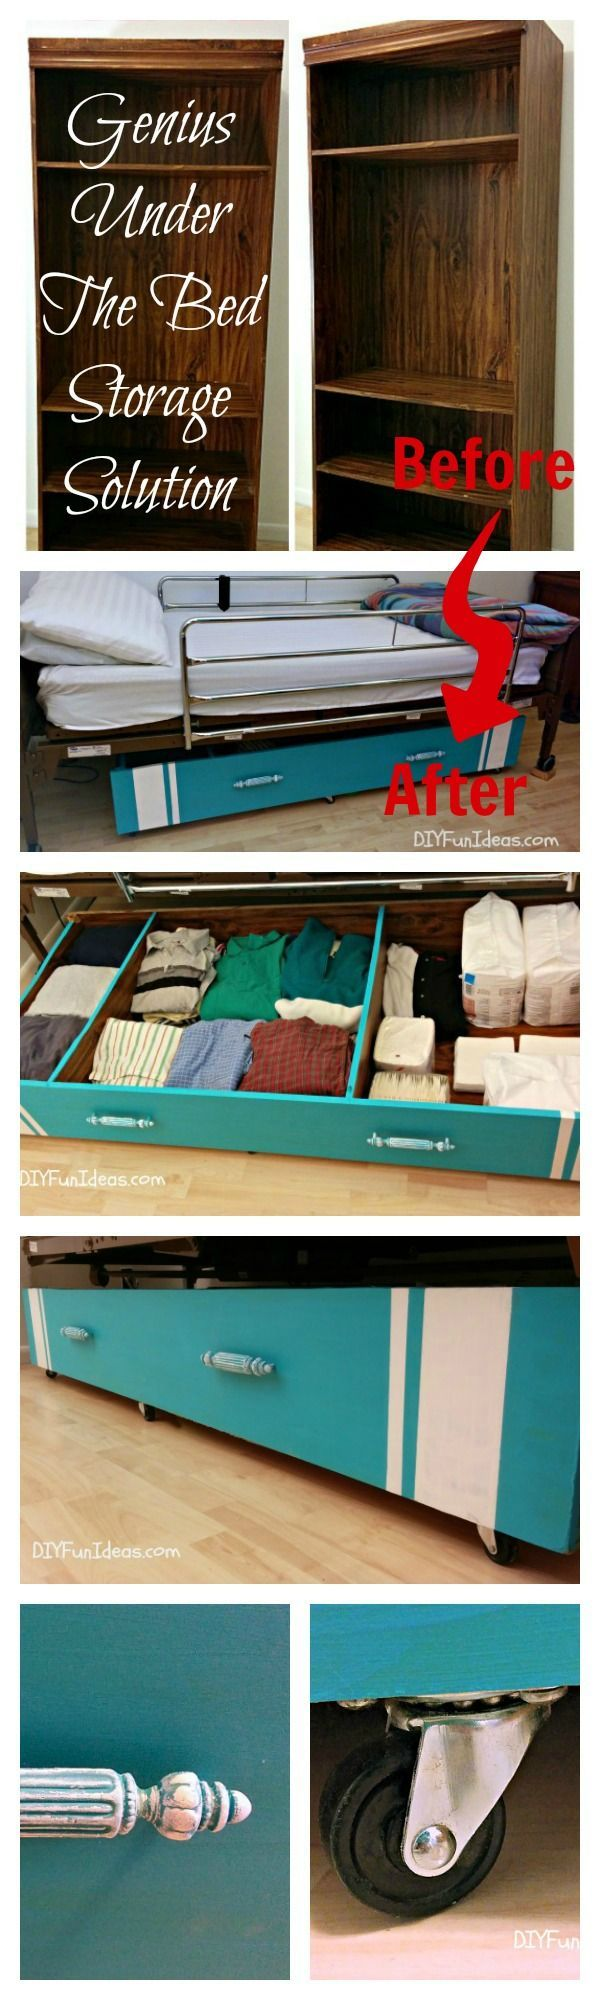 Genius Diy Under The Bed Storage Home Projects Home Diy Diy